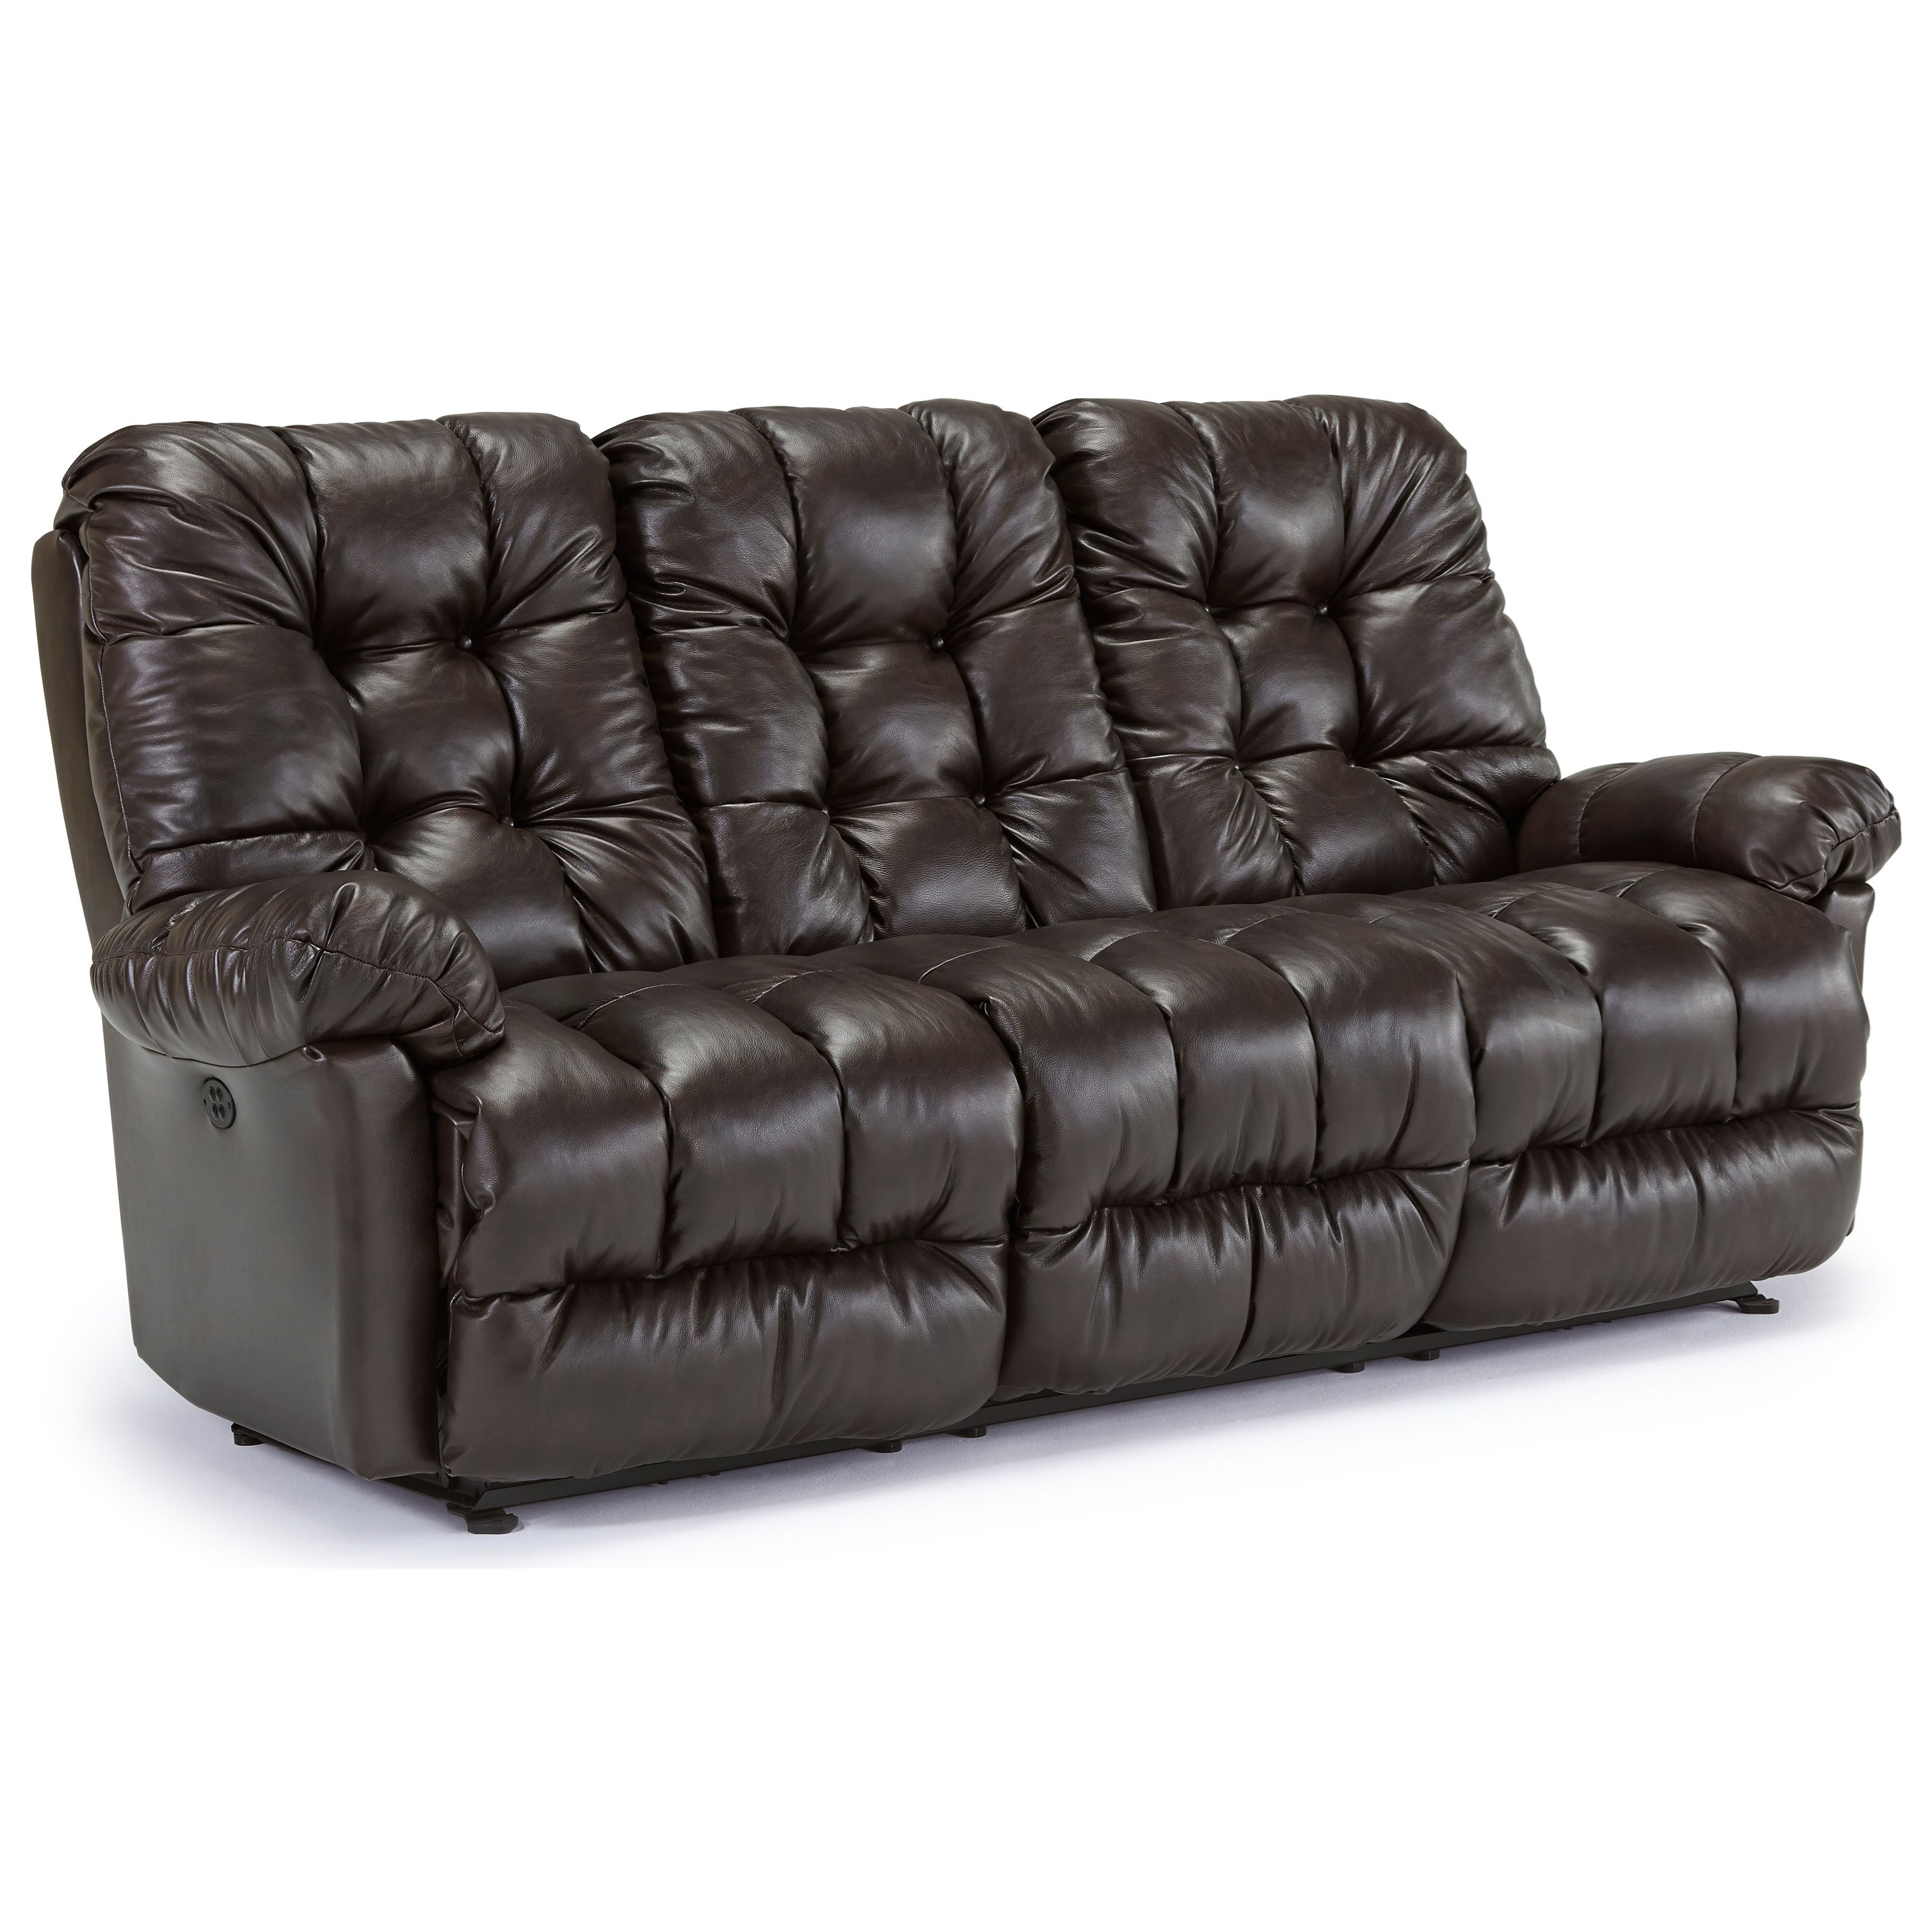 Best Home Furnishings Everlasting Power Reclining Sofa - Item Number: S515CP4-75816L